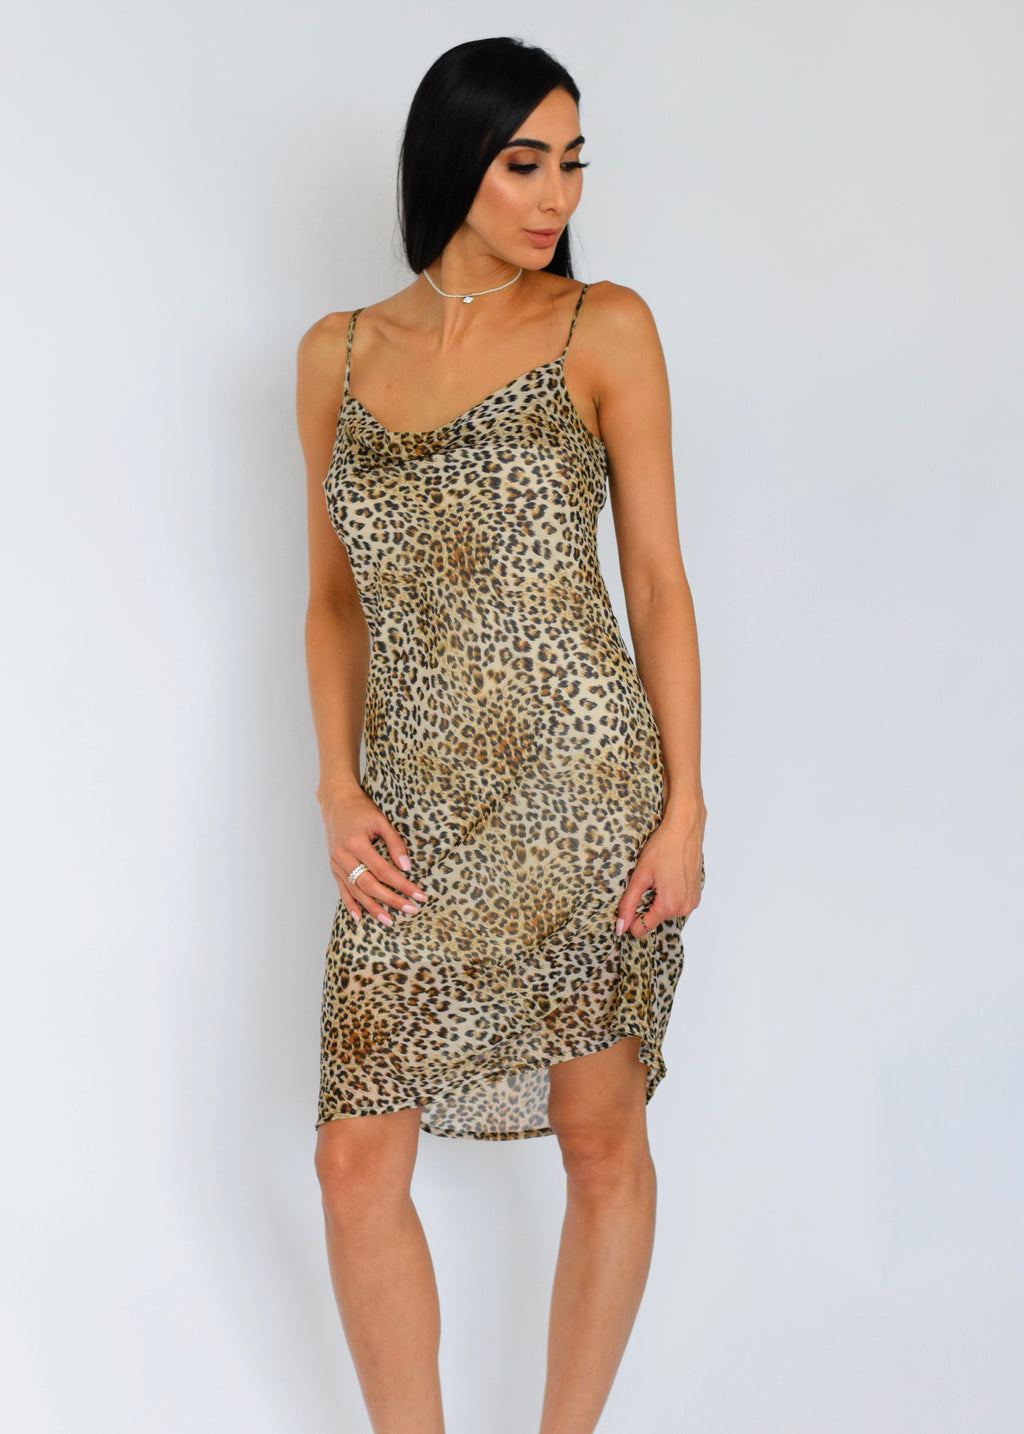 Leopard 'Catch Me If You Can' Slip Dress